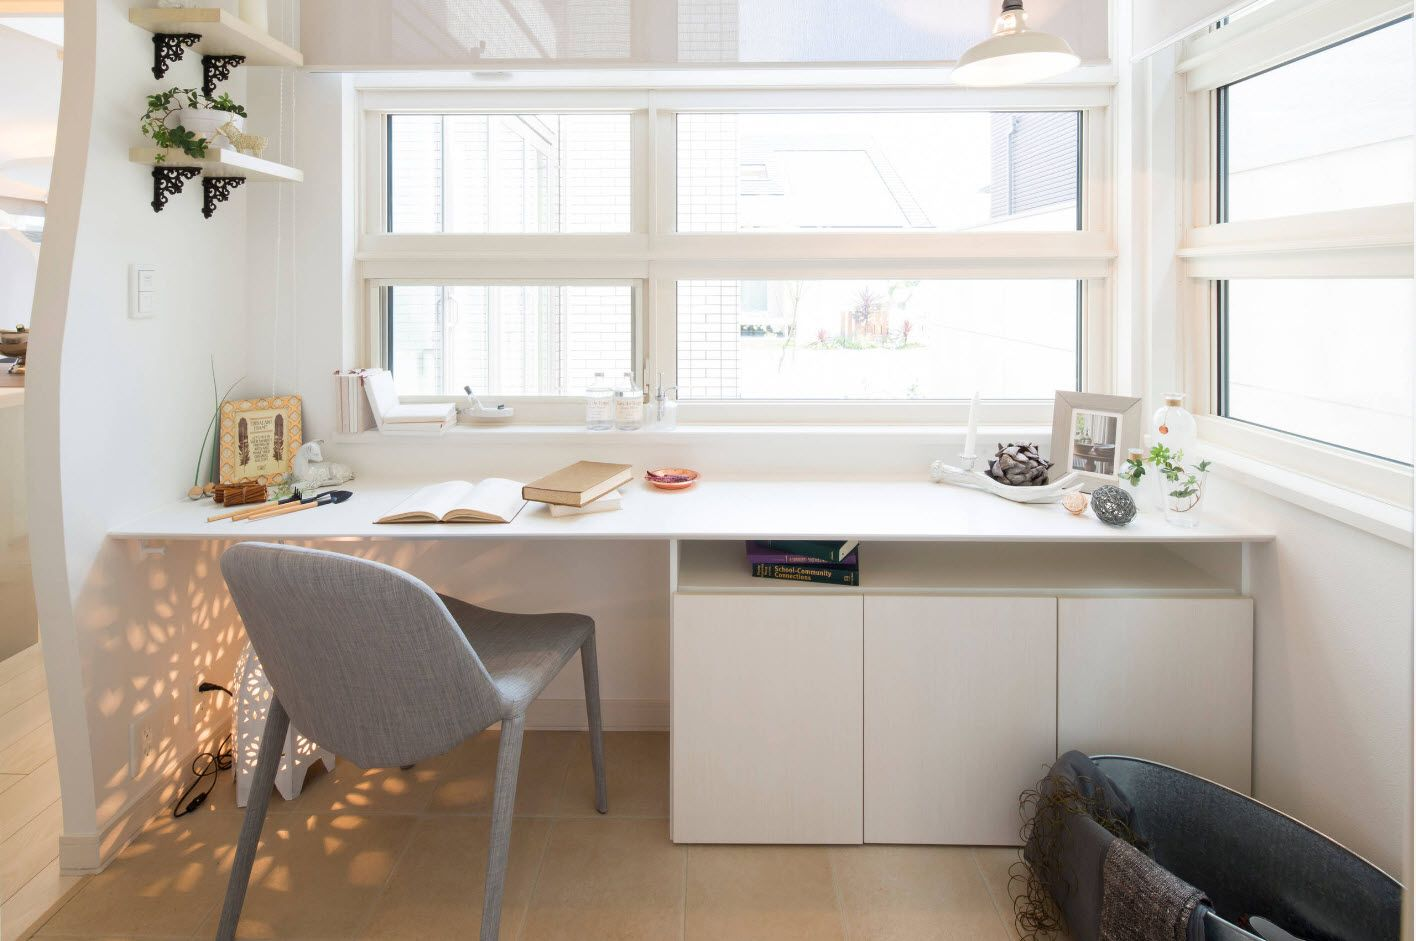 Top 100 Modern Home Office Design Trends 2017. Glance plastic ceiling, gray plastic chair and window sill side tabletop